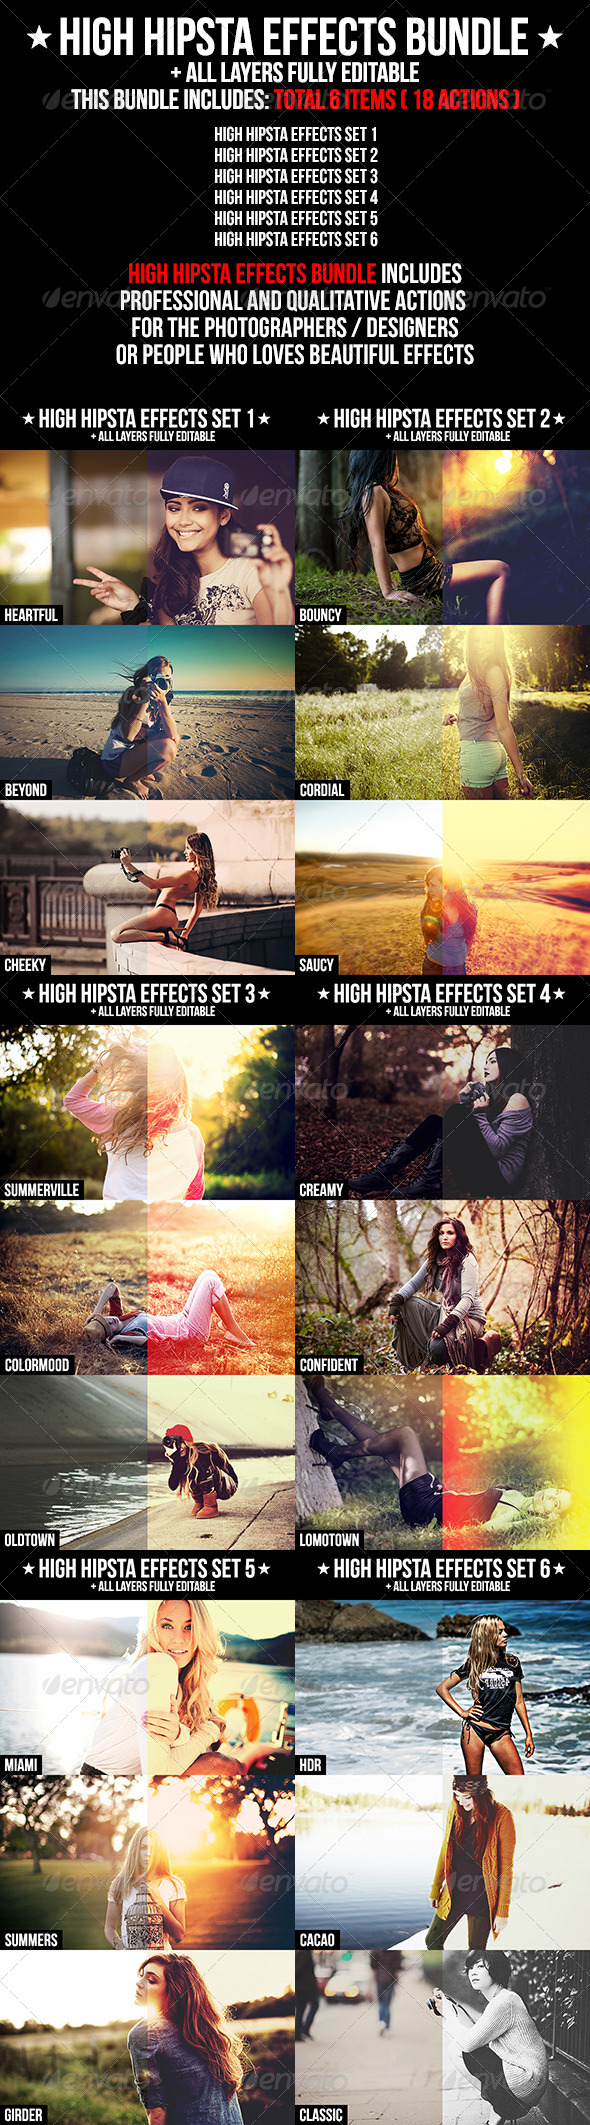 High Hipsta Effects Bundle - Photo Effects Actions